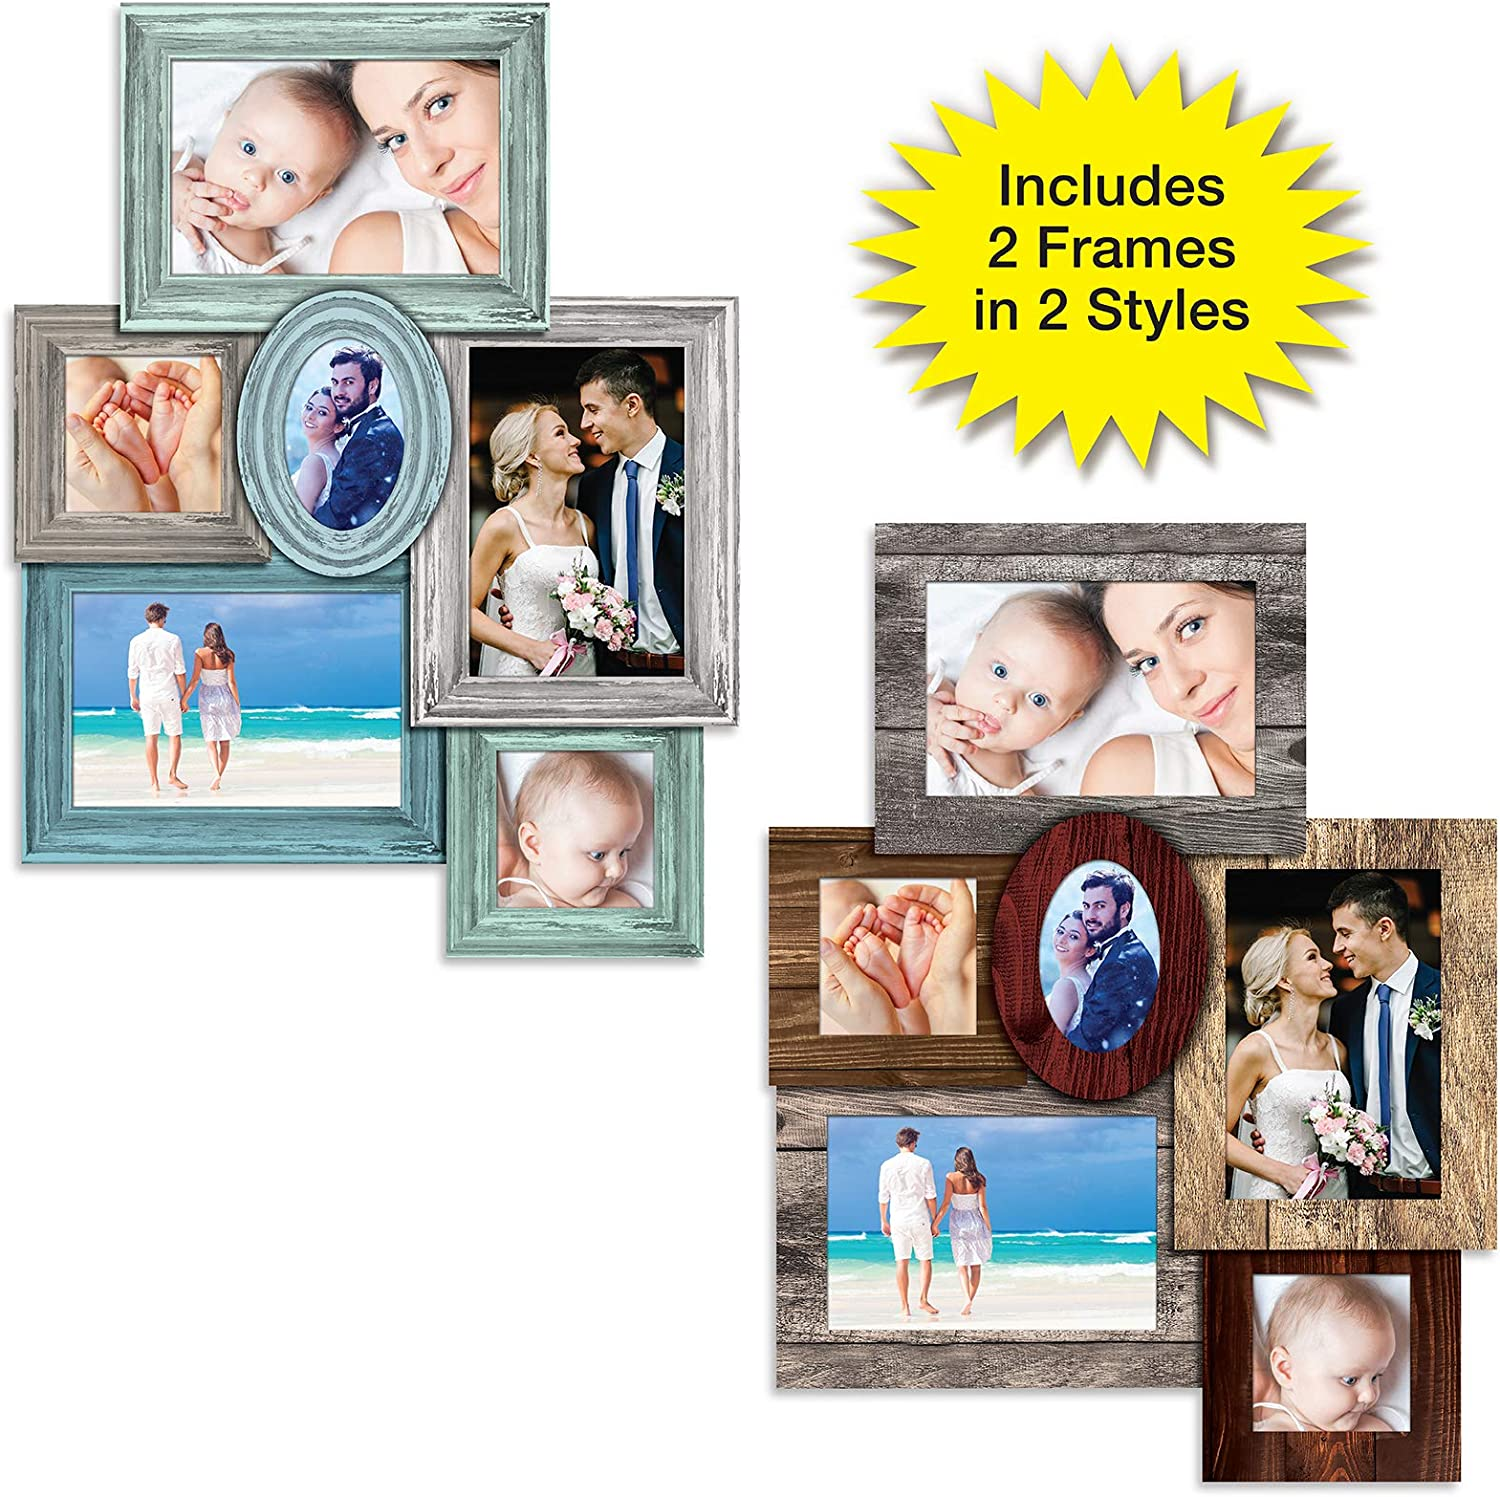 Excello Global Products Magnetic Collage Picture Frame Sets: Includes 2 Sets of Refrigerator Magnet Frames - Rustic Wooden Style Frames Each Hold 6 Pictures